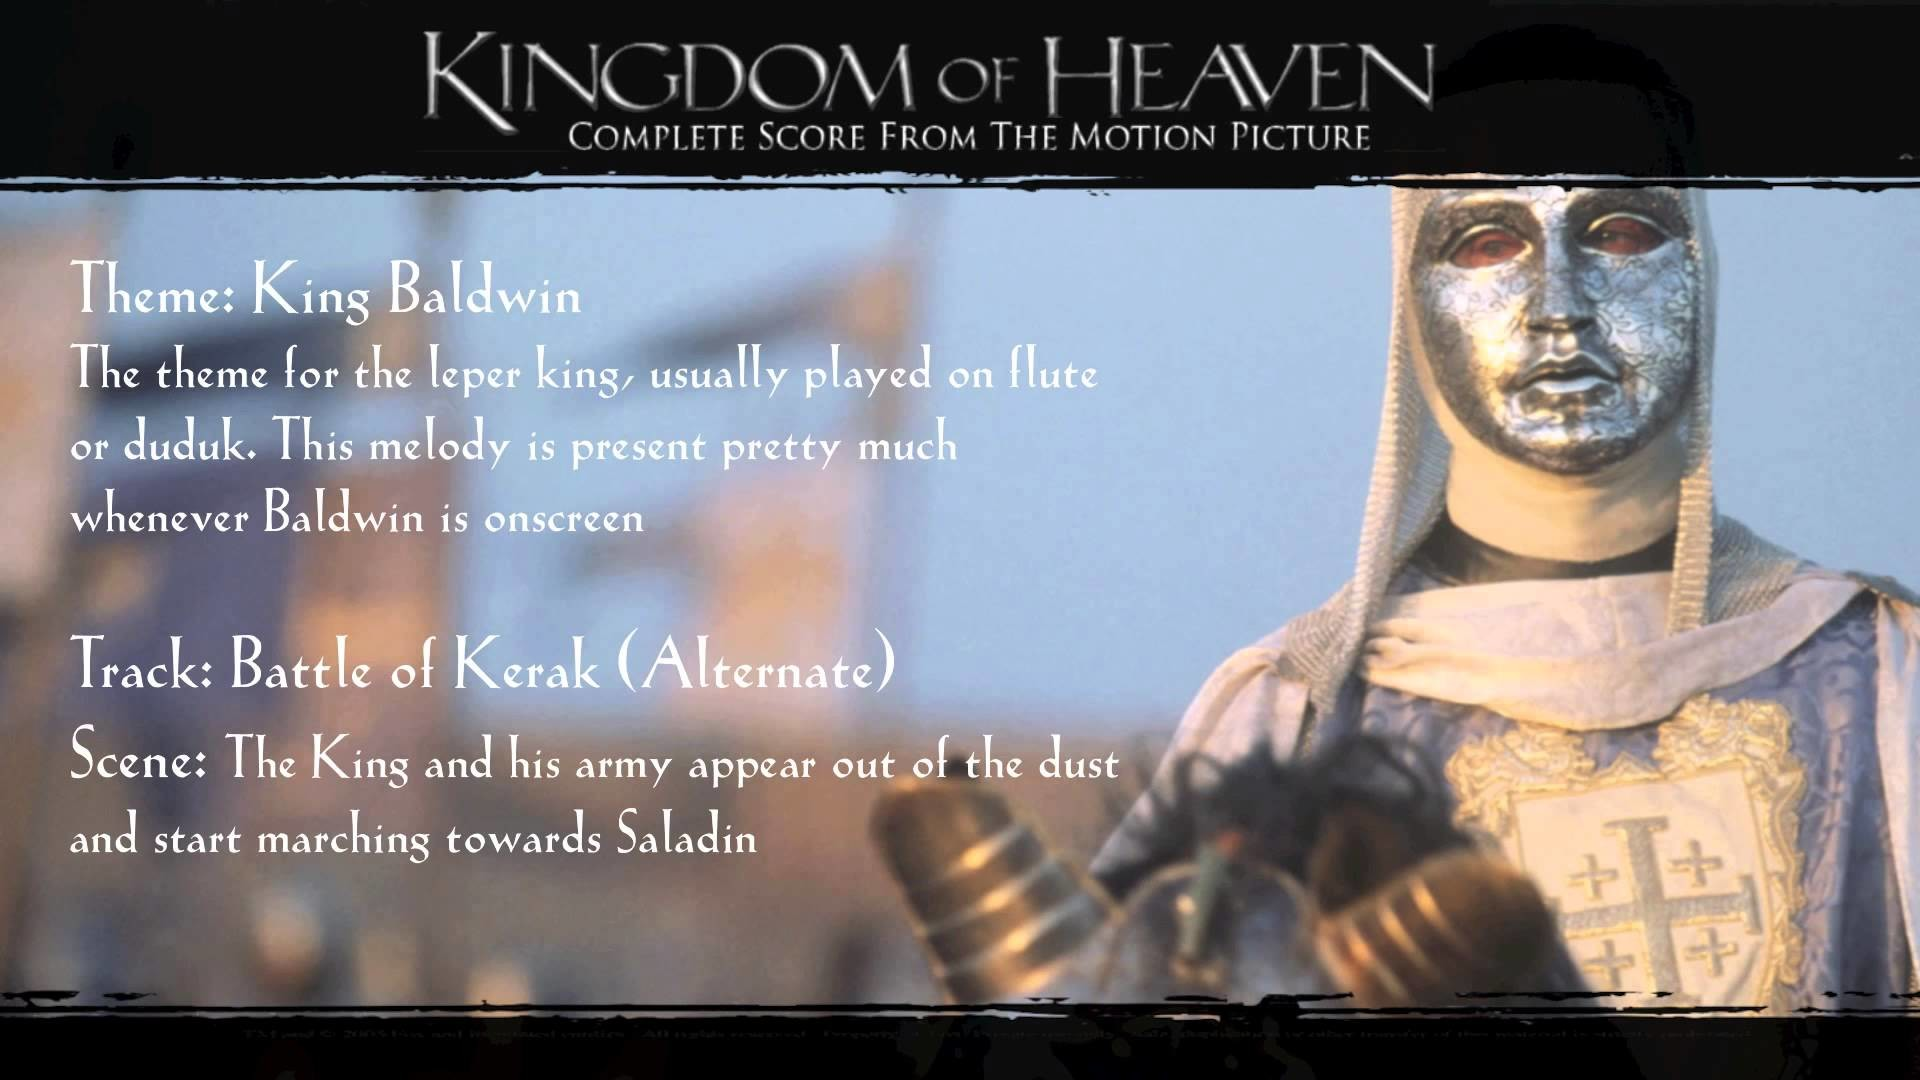 reaching the kingdom of heaven essay The lord's prayer emphasizes this point, thy kingdom come, thy will be done should every christian practice the ideals of achieving the course to the heavenly kingdom, god's will will be achieved in this existence.